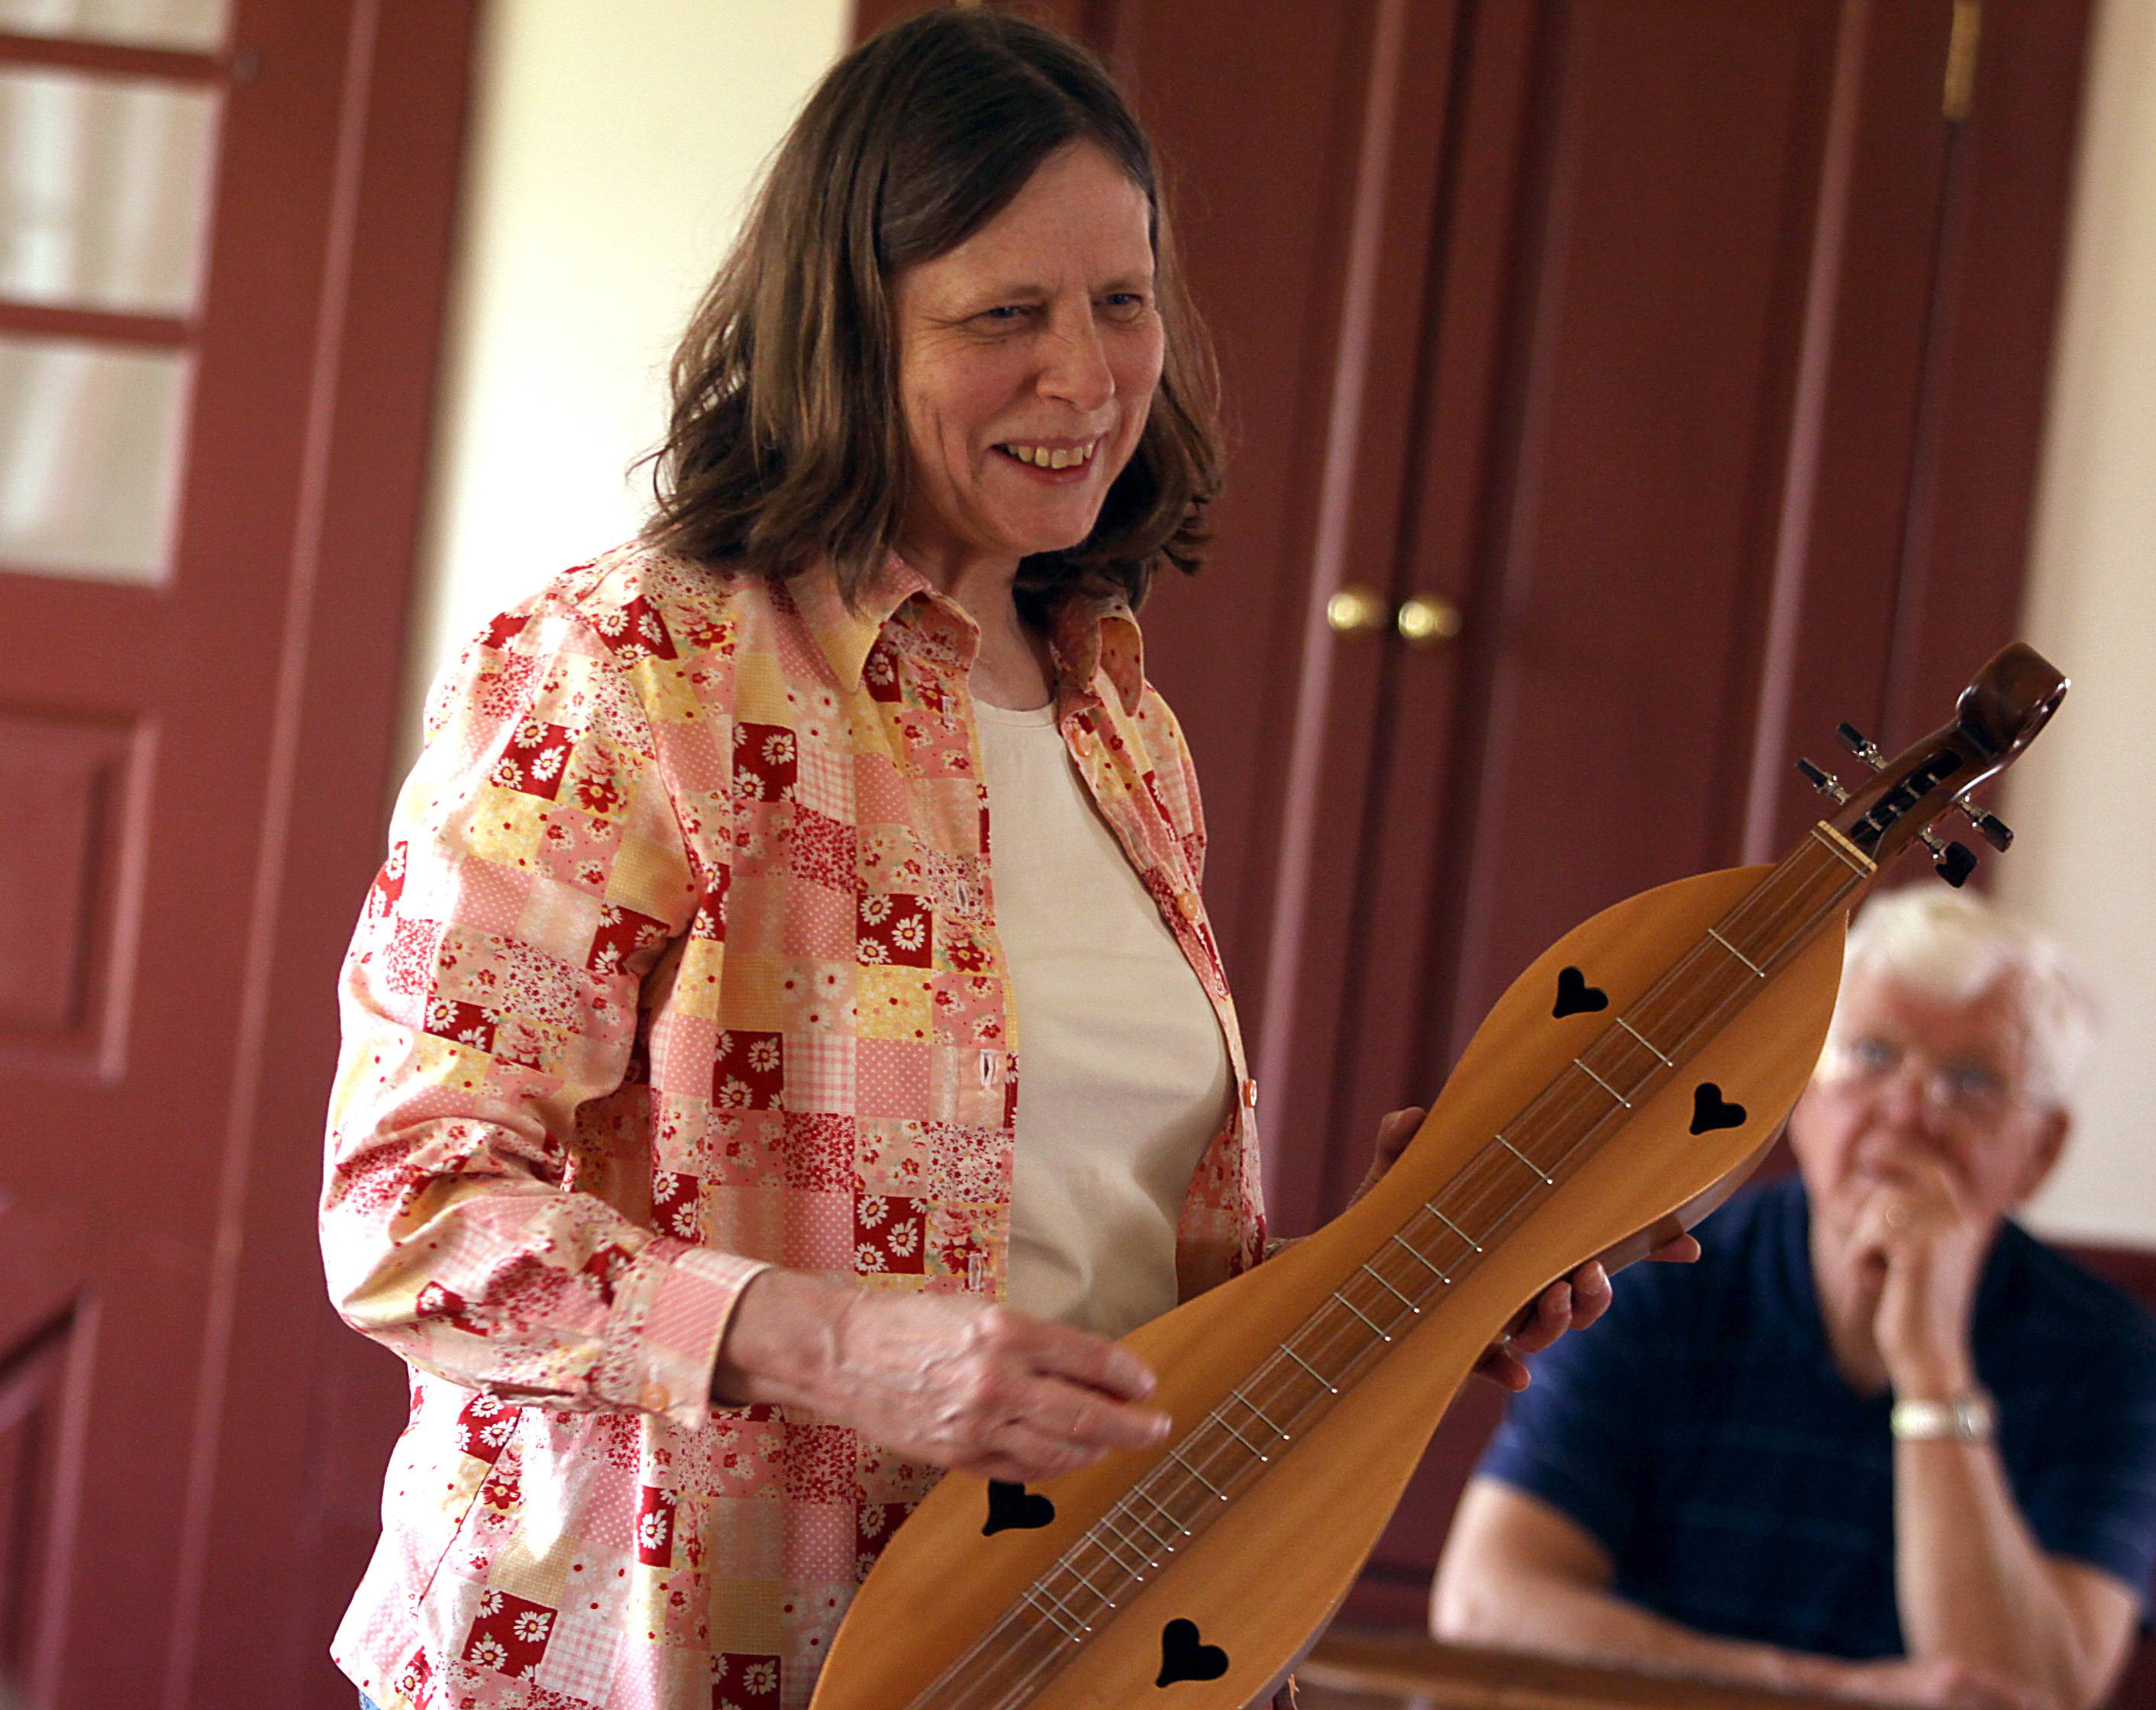 Dona Benkert of the Folk-Lore Center music school of Warrenville introduces the history of the mountain dulcimer during a previous dulcimer workshop at Garfield Farm Museum in Campton Hills.